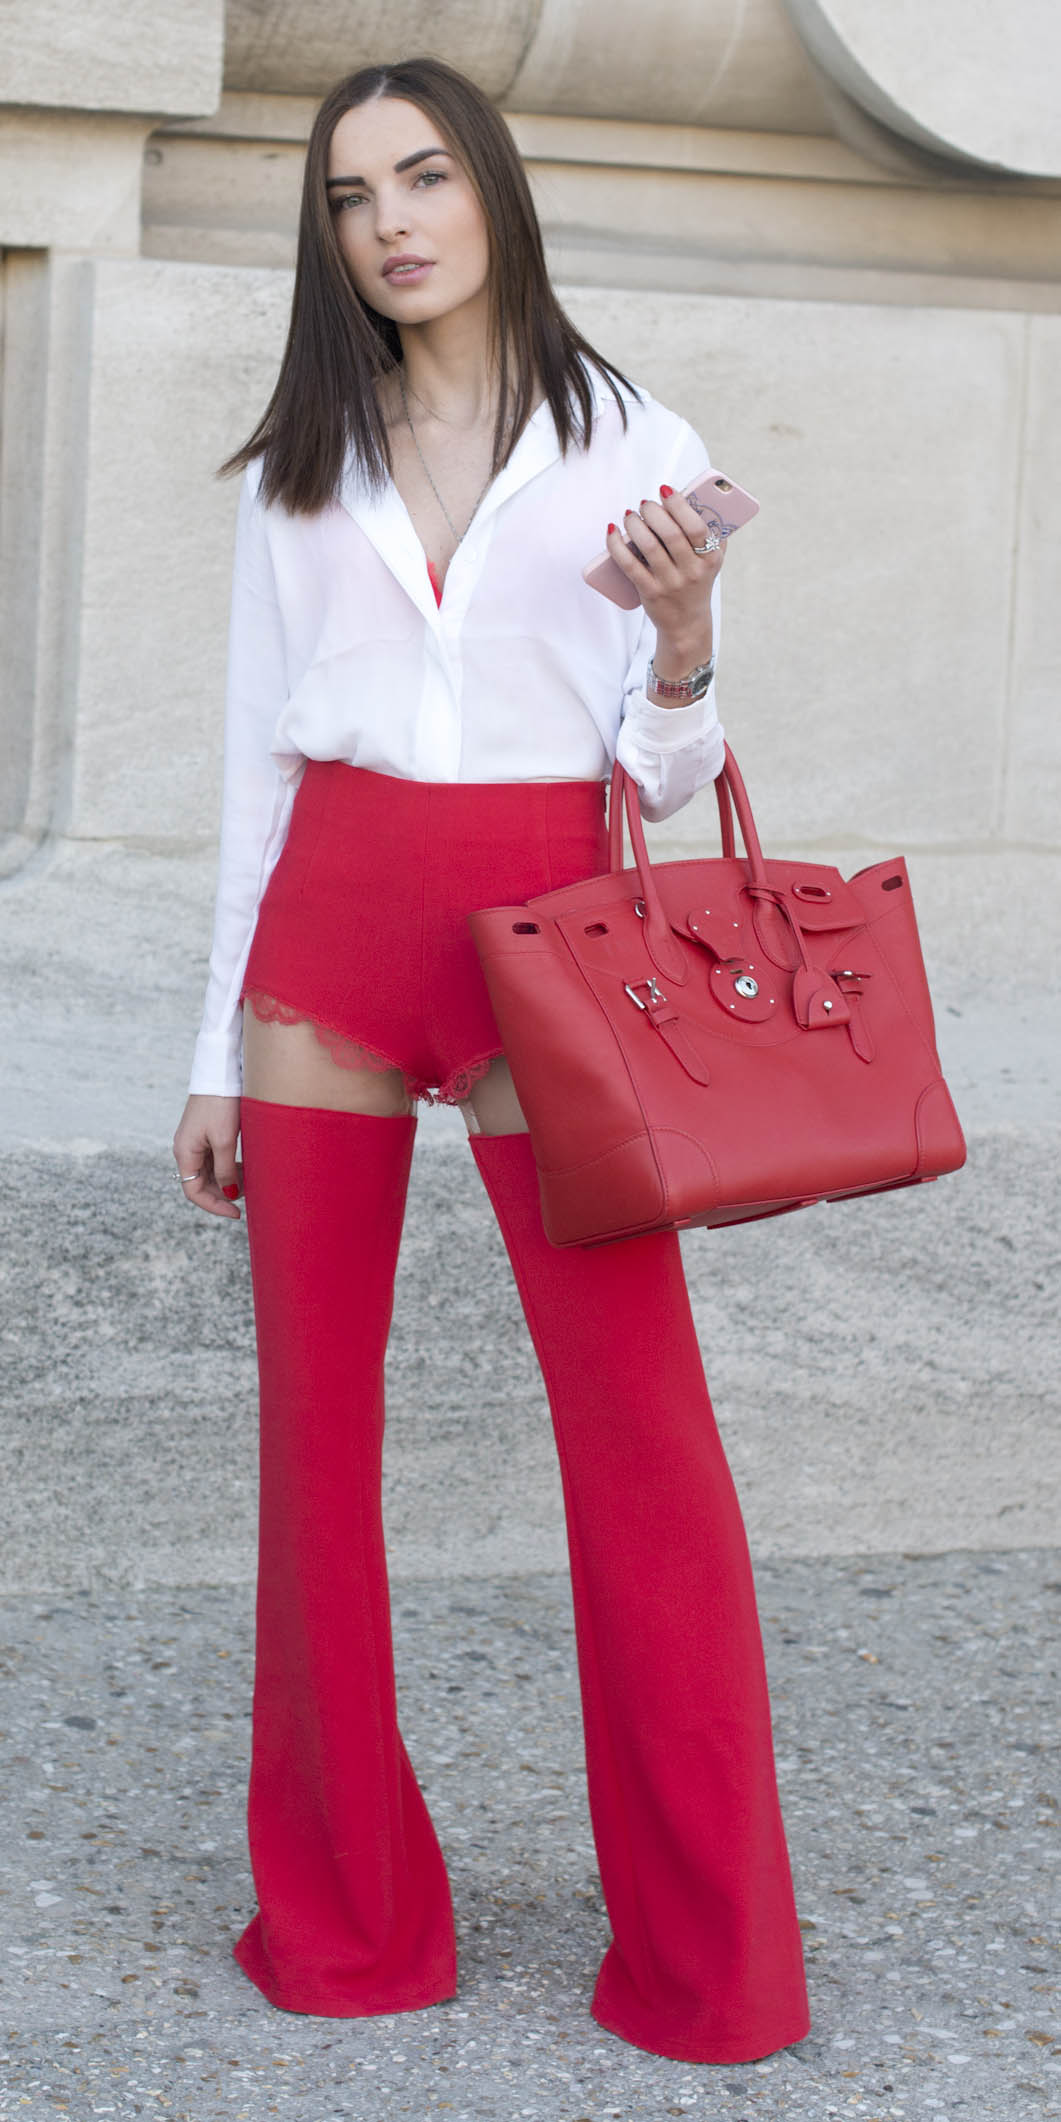 red-wideleg-pants-white-top-blouse-hairr-red-bag-howtowear-cowboy-chaps-valentinesday-outfit-fall-winter-lunch.jpg